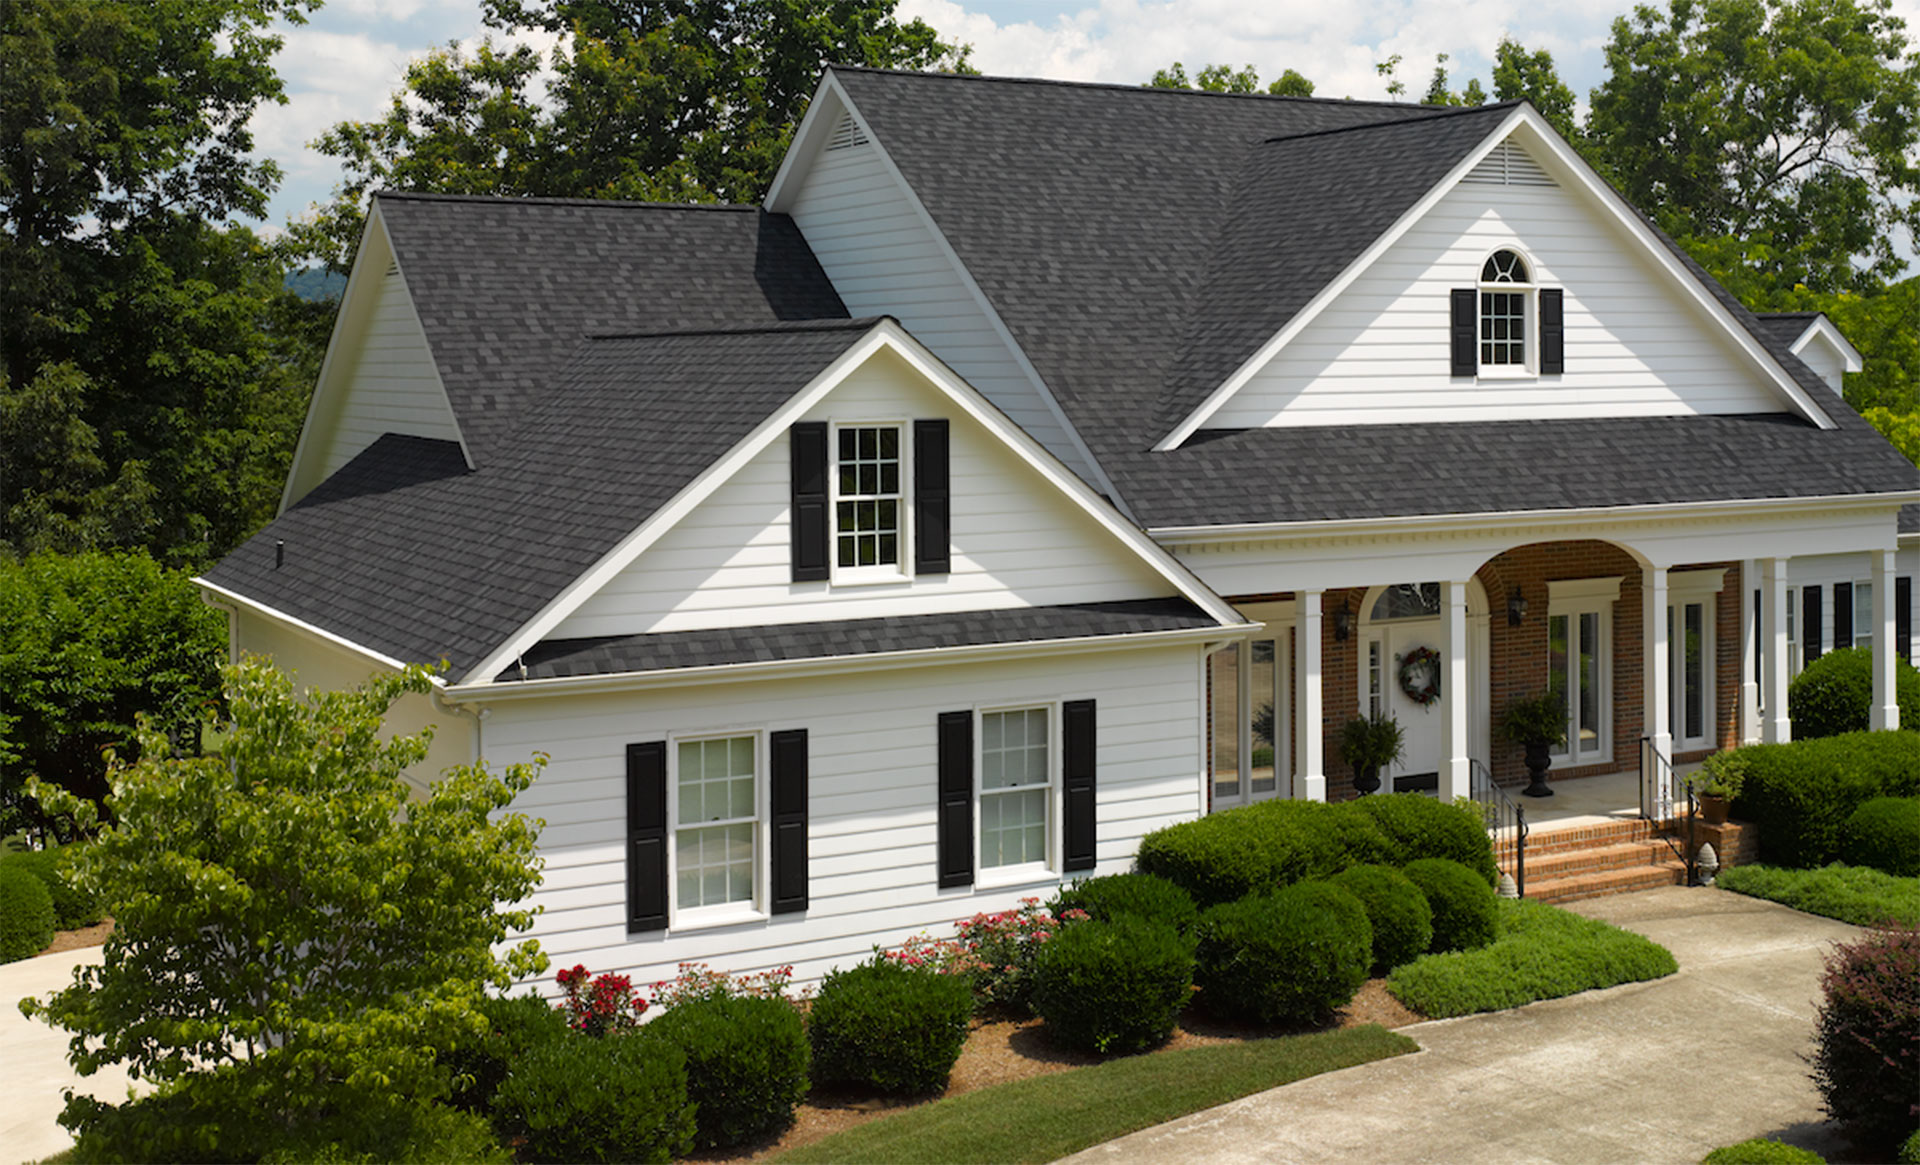 Southern Star Roofing Professional Roofers In Charlotte Nc